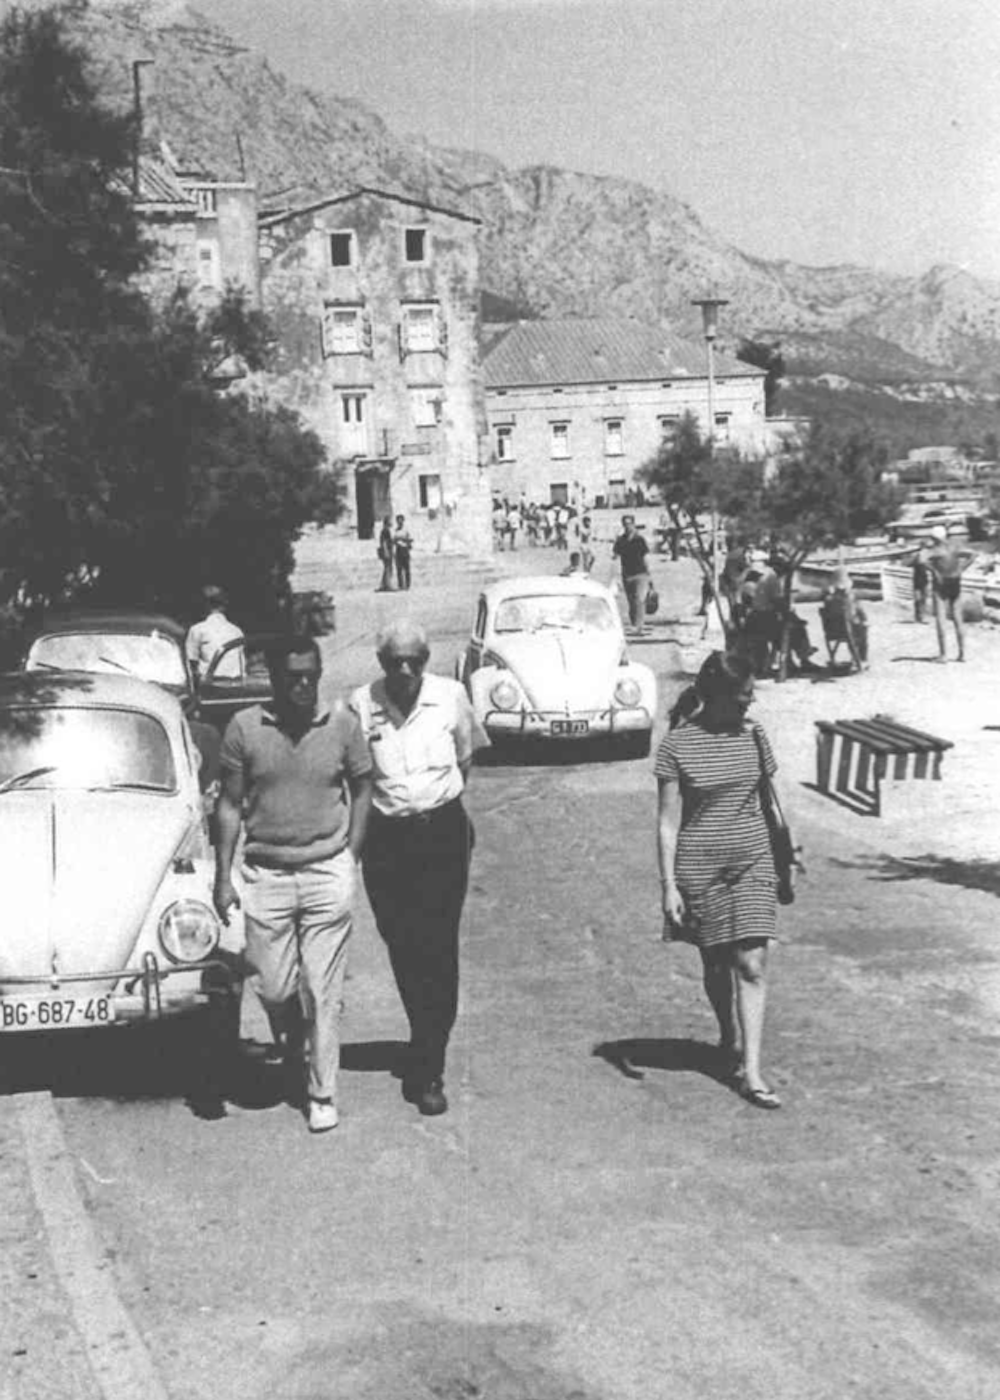 Heinz Lubasz and Herbert Marcuse walk past Korčula's House of Culture. Image courtesy of the Praxis Digital Archive